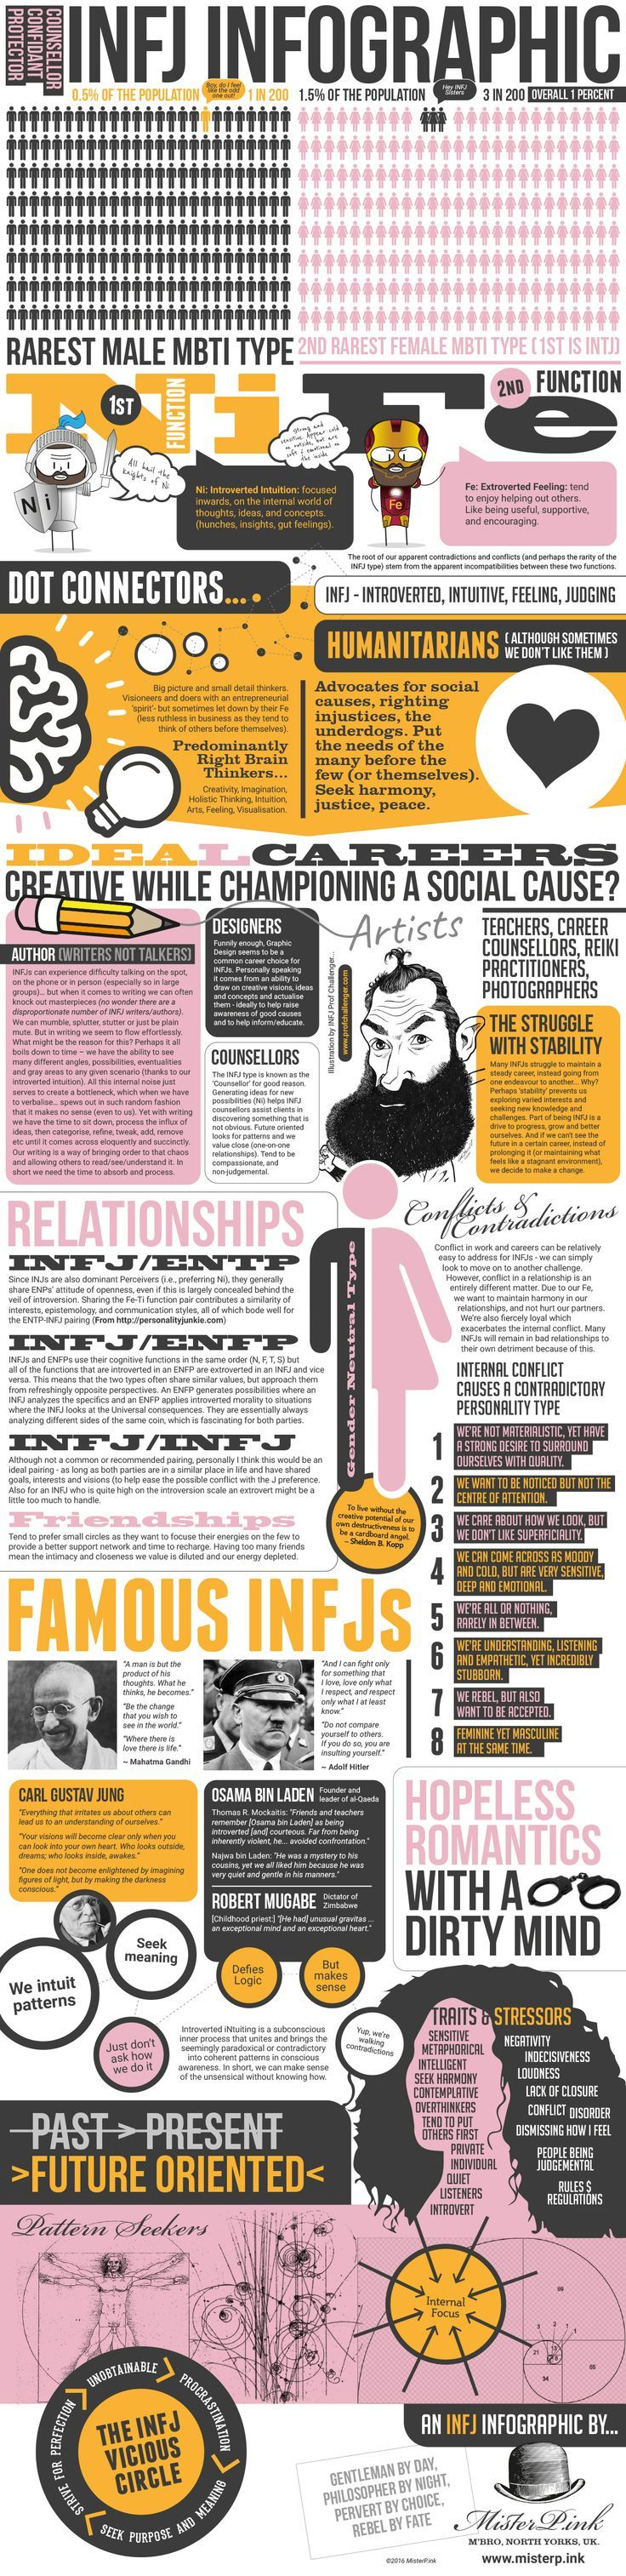 images about oh captain my captain jfk infj infographic truly one of the best and most complete descriptions of infj i